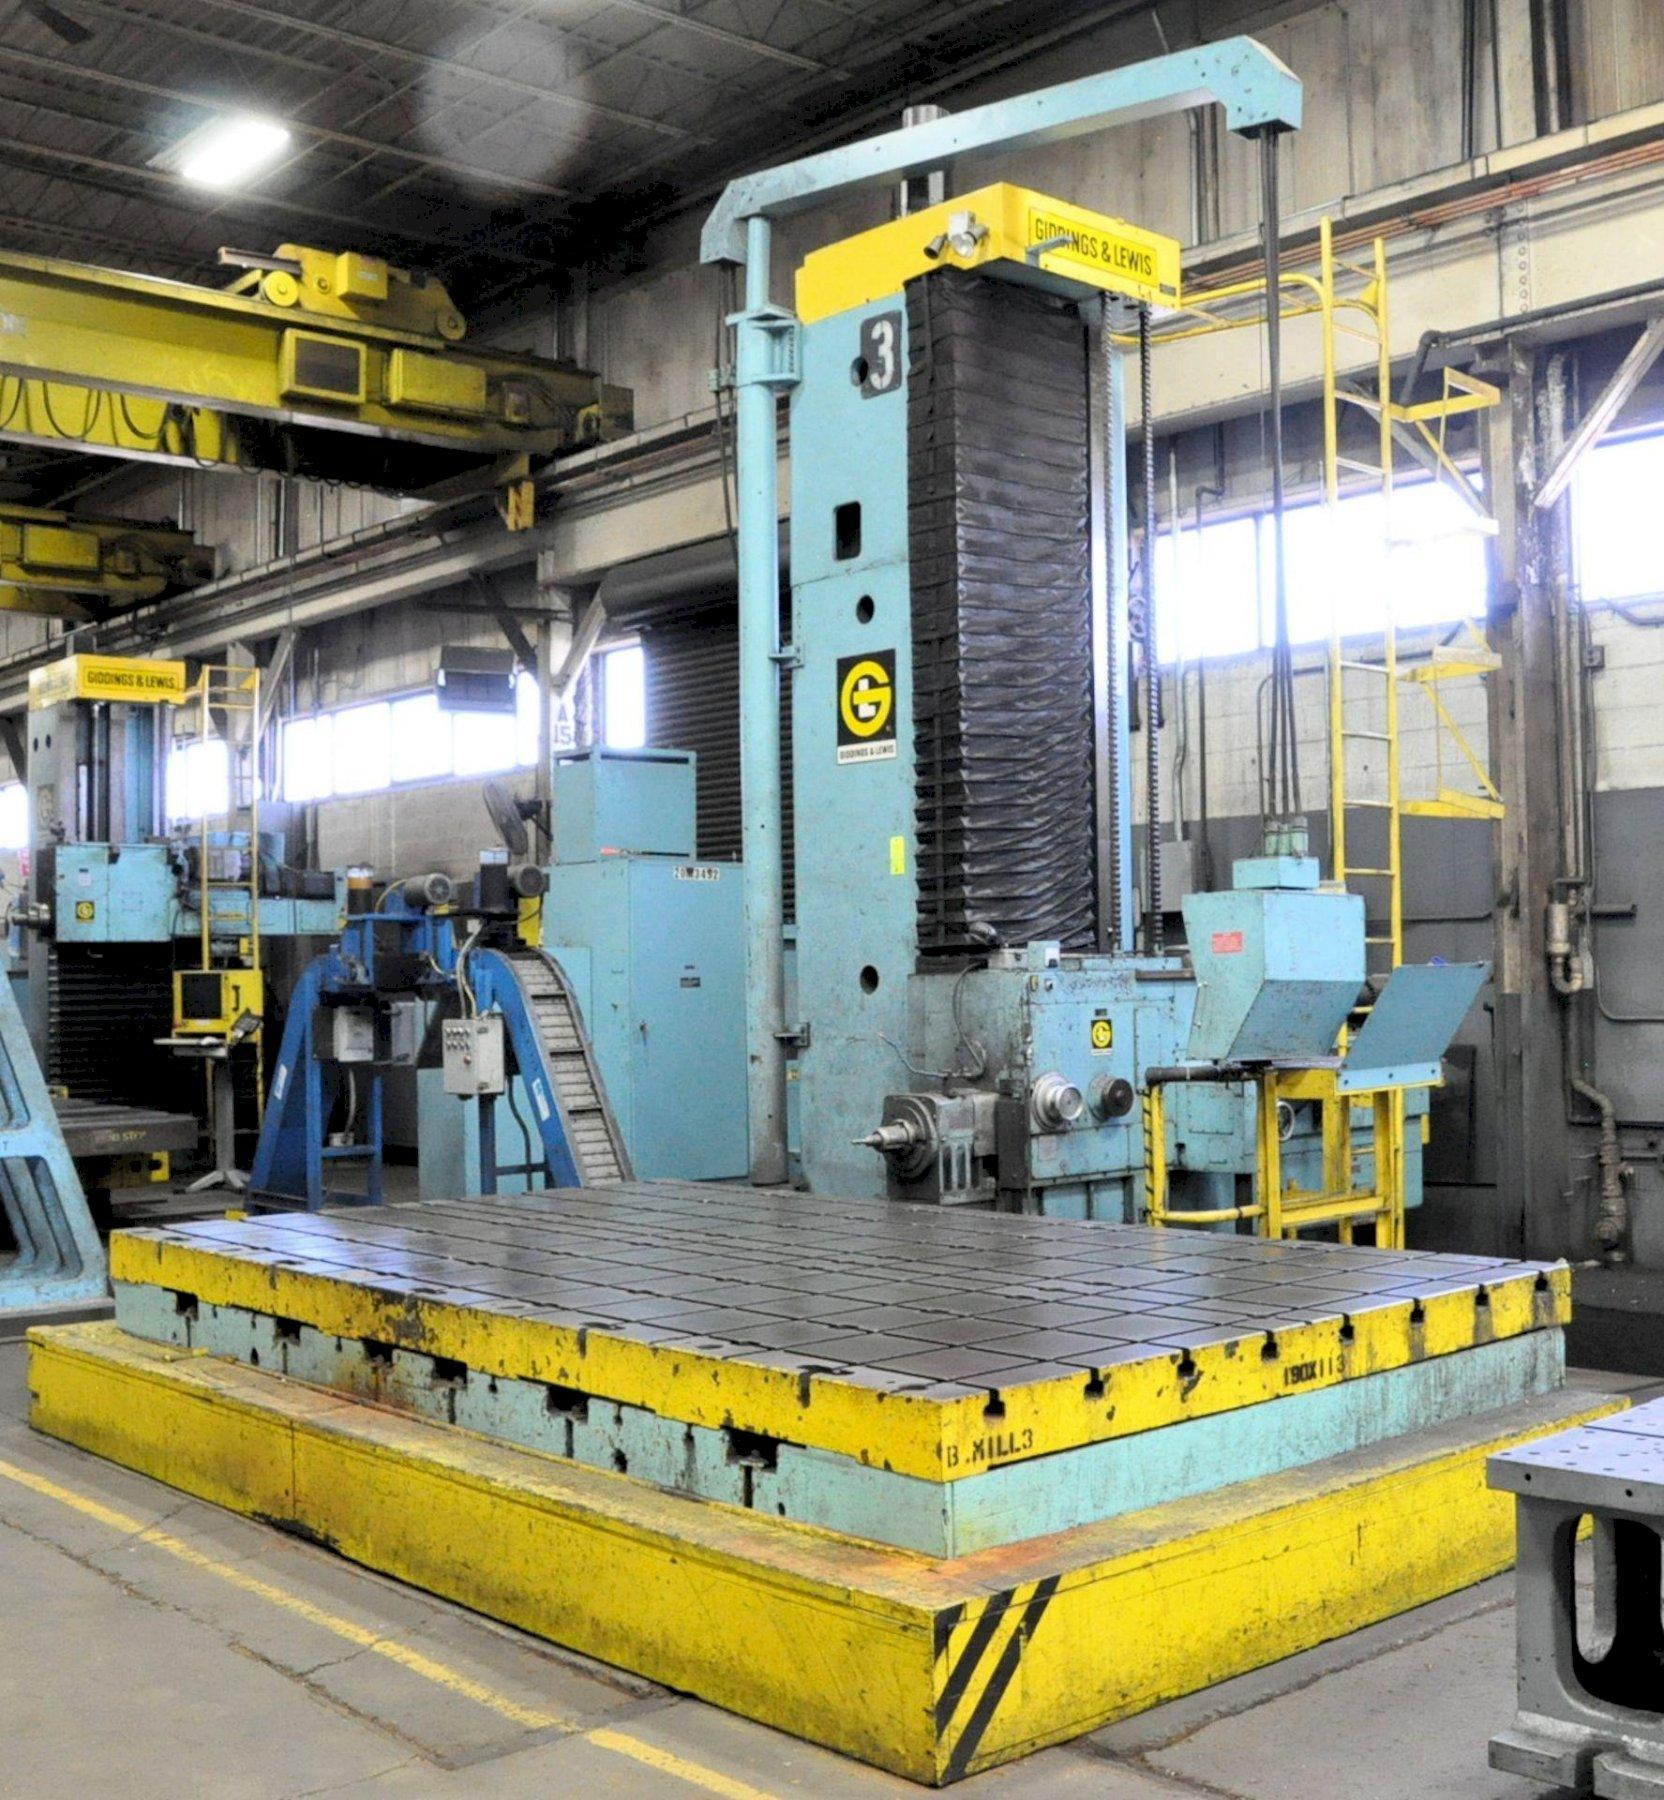 "6"" Giddings & Lewis Model 70-H6-UF, Floor Type CNC Horizontal Boring Mill, S/n 425-33-68, 180"" x 96"" T-Slotted Table Size, 192"" X-Axis, 113"" Y-Axis, 48"" Z-Axis, Chip Conveyor"